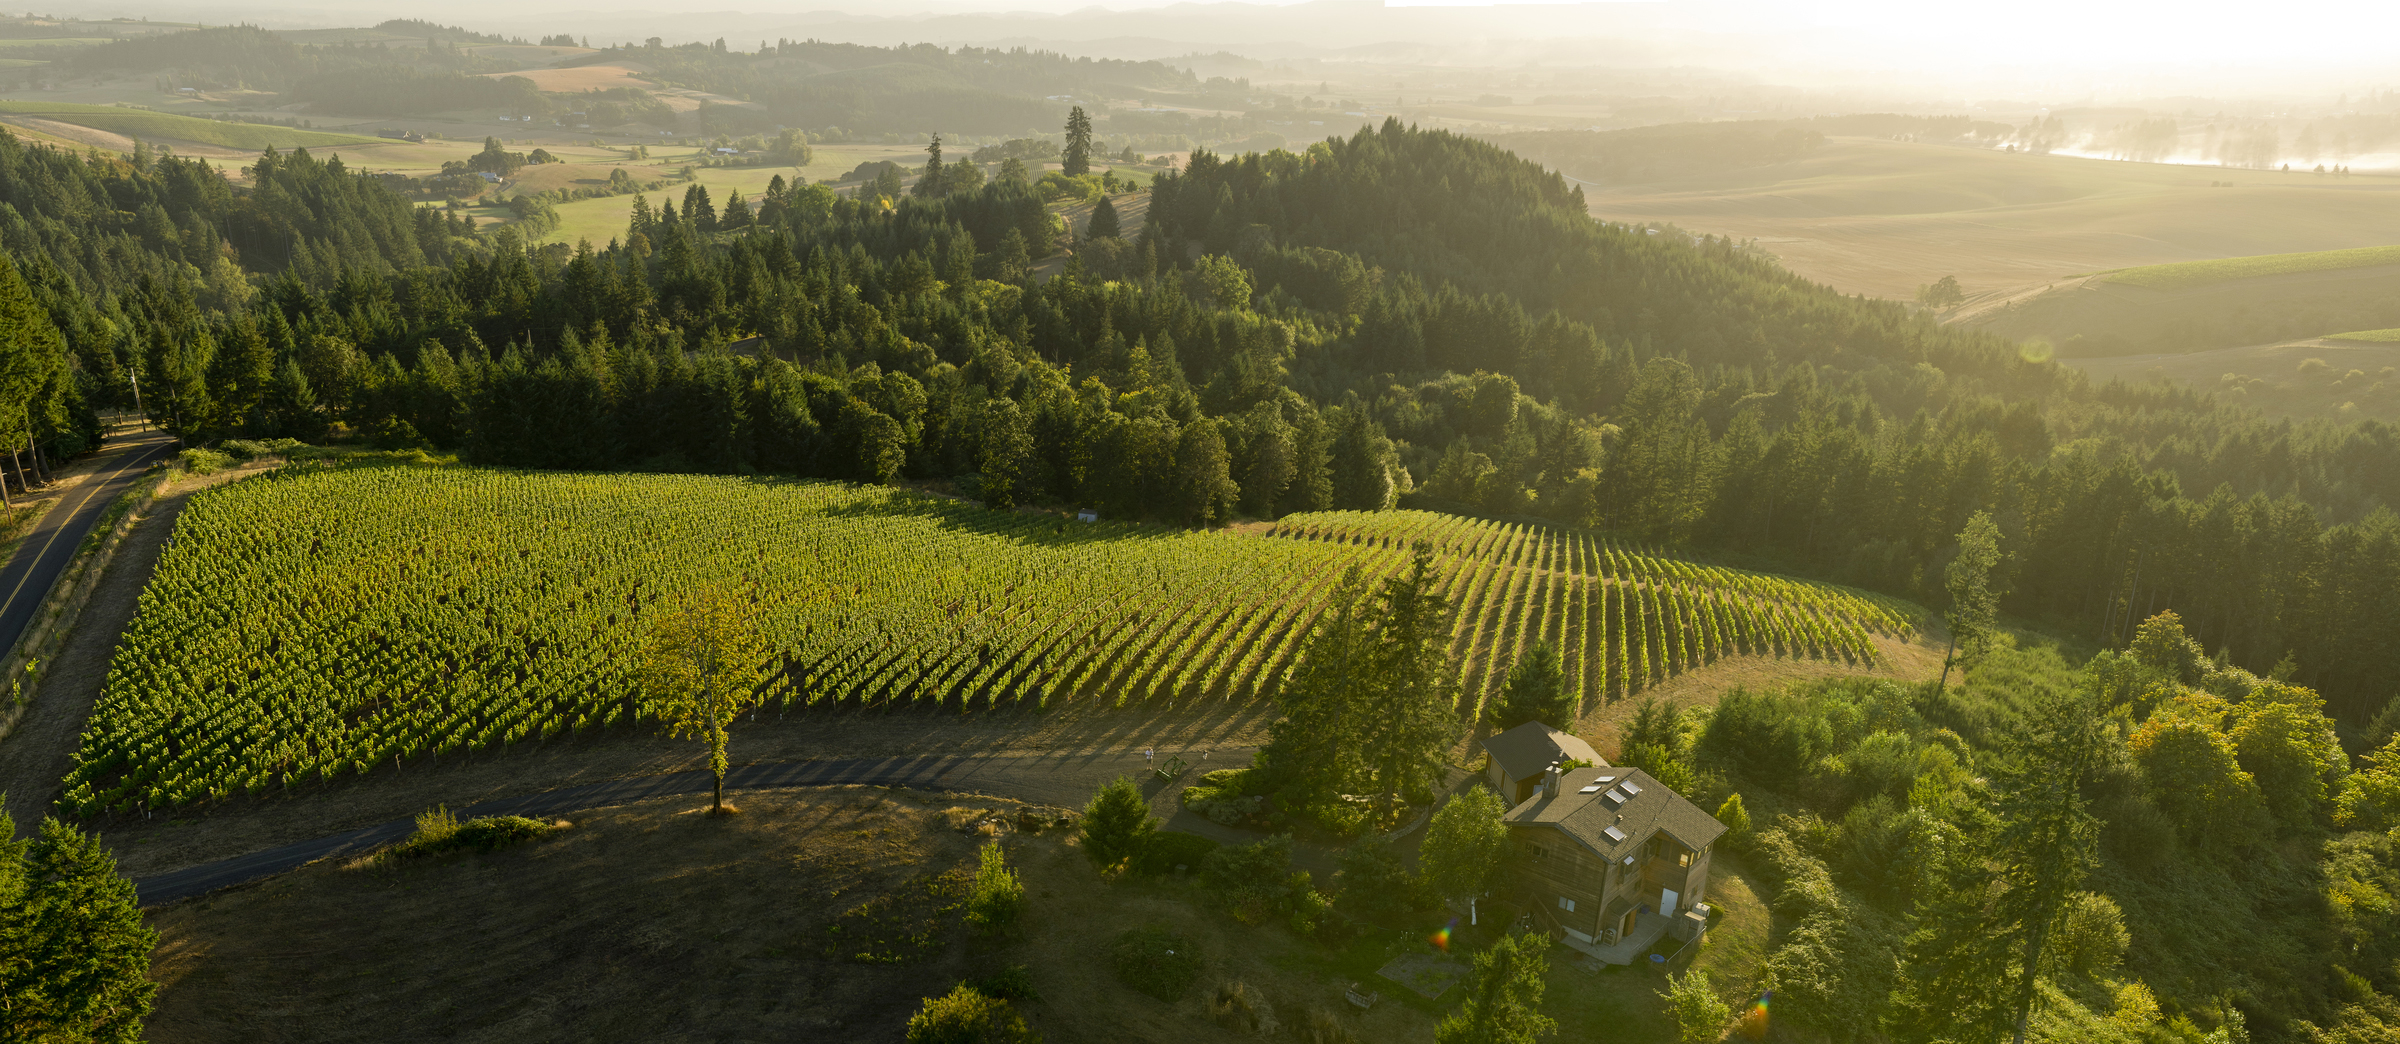 GLORIOUS TO VIEW: An aerial view of Hilary and Chris Berg's vineyard in Yamhill, Oregon, in the Willamette Valley.  Photo courtesy of Andrea Johnson.